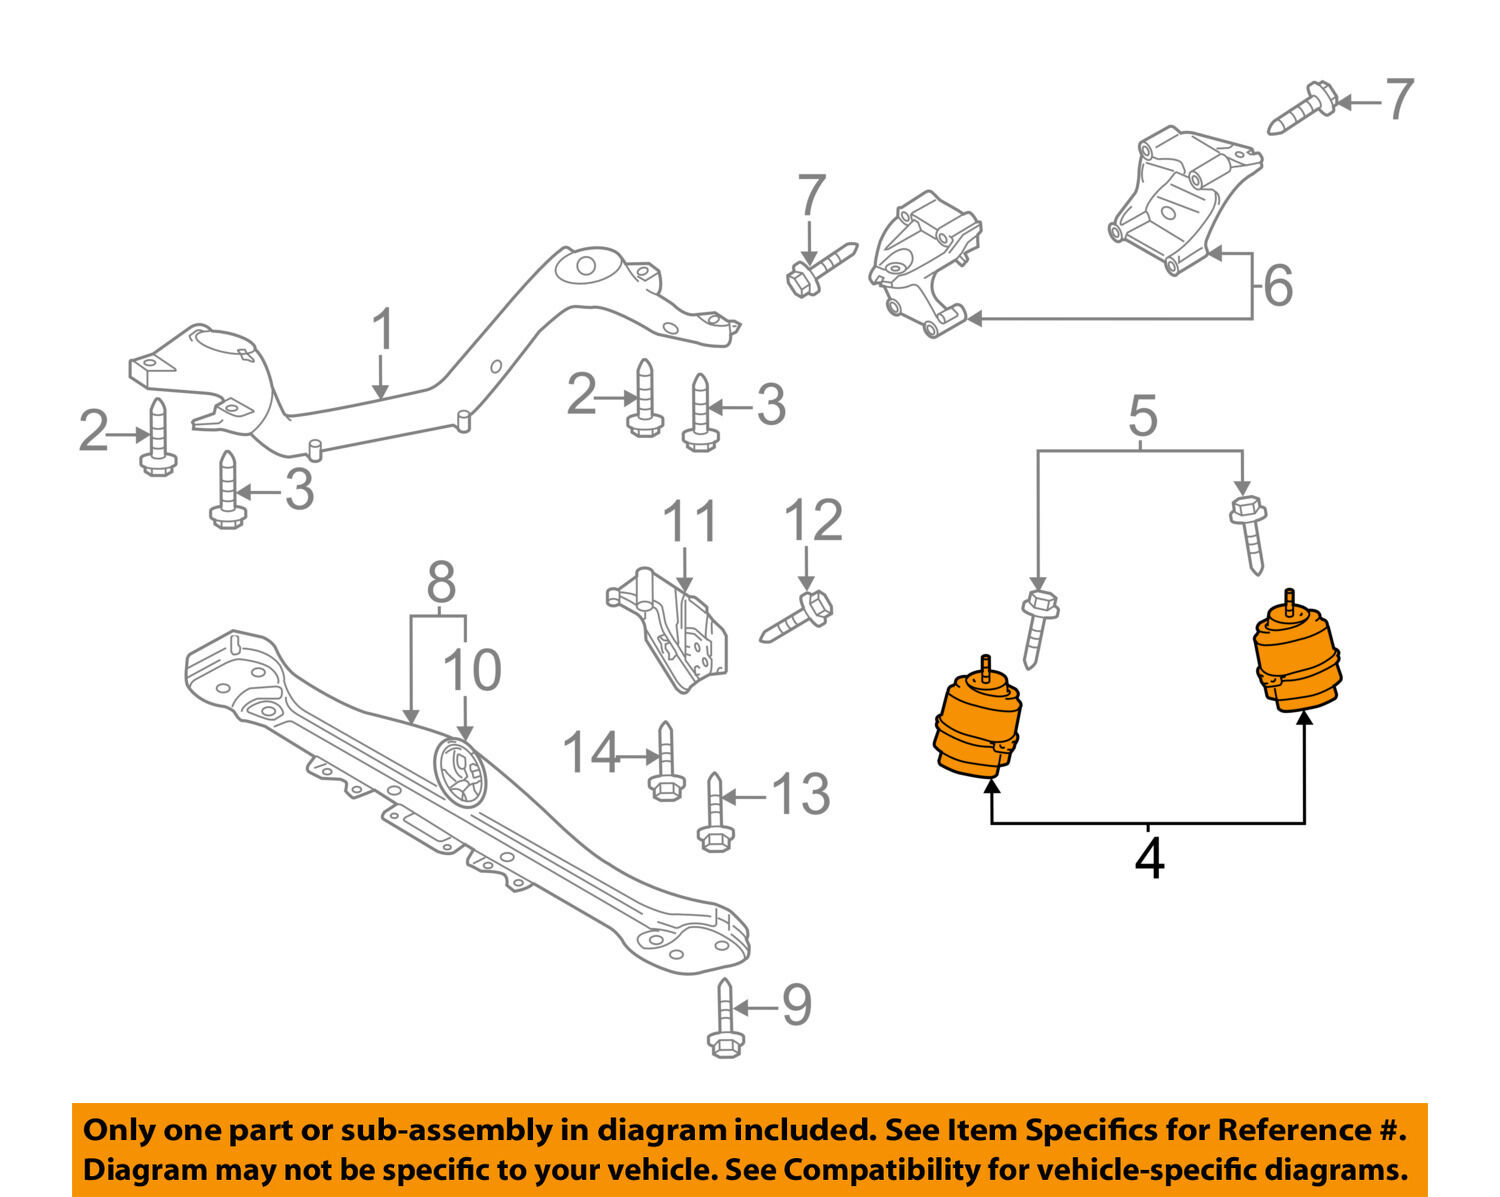 1995 Saab 900 Wiring Diagram Opinions About 1999 9 5 Convertible Elsalvadorla 3 Electric Cooling System